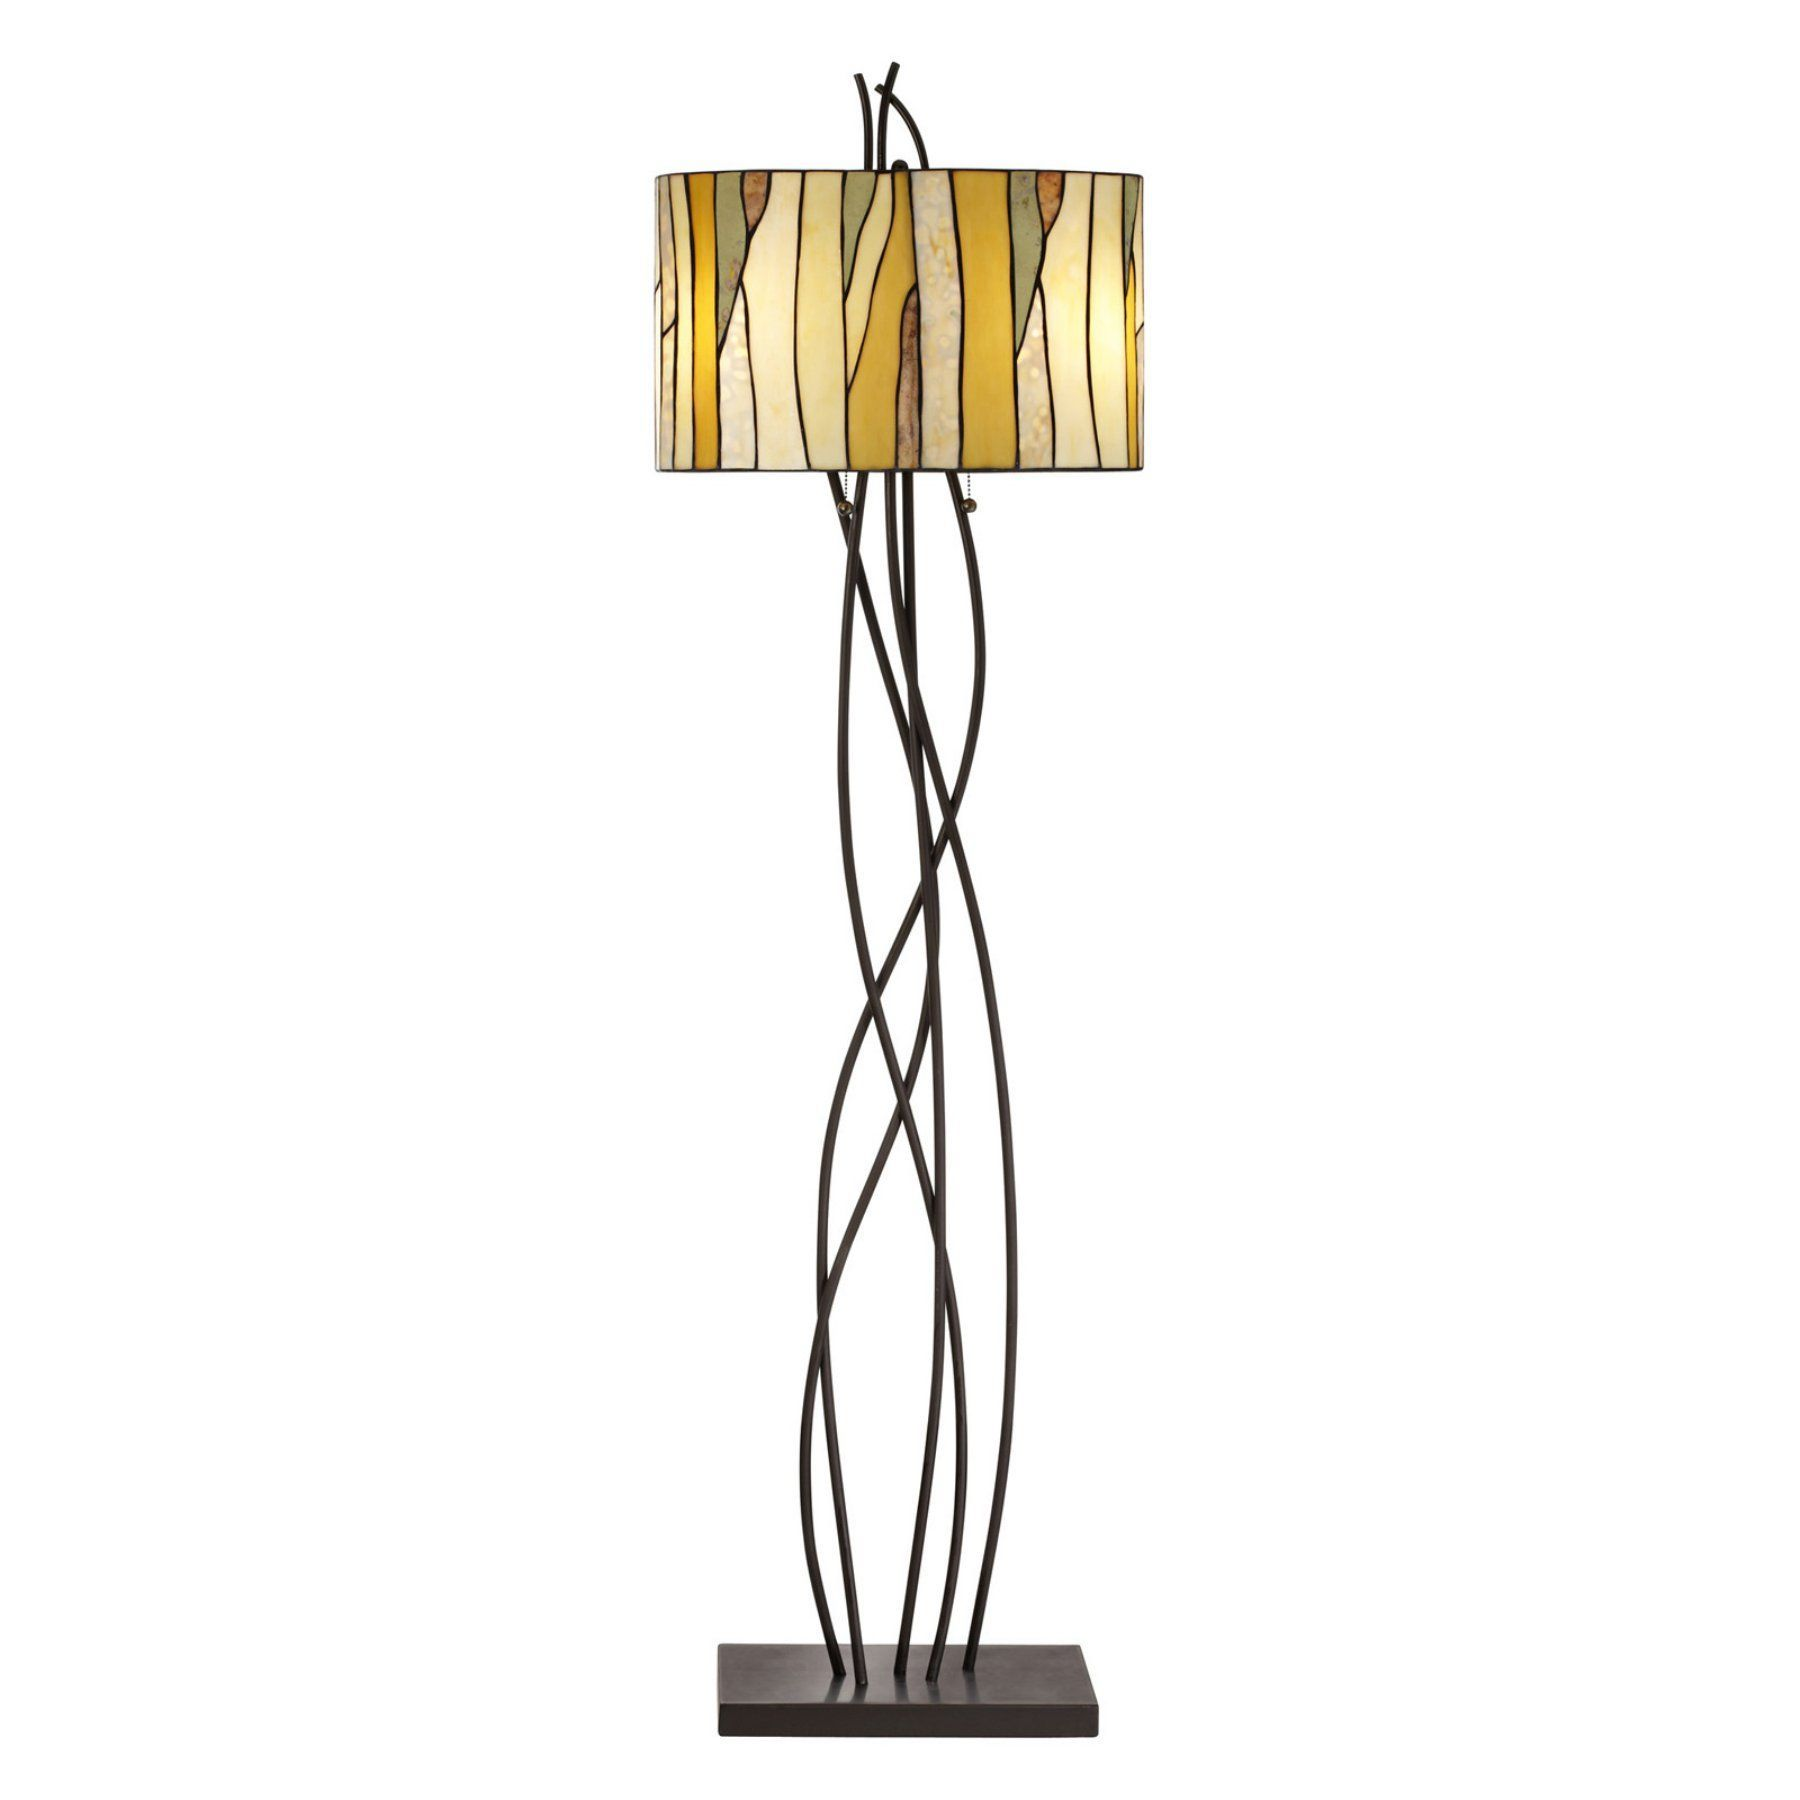 Pacific Coast Lighting Oak Vine Floor Lamp Floor Lamp Lamp Bronze Floor Lamp